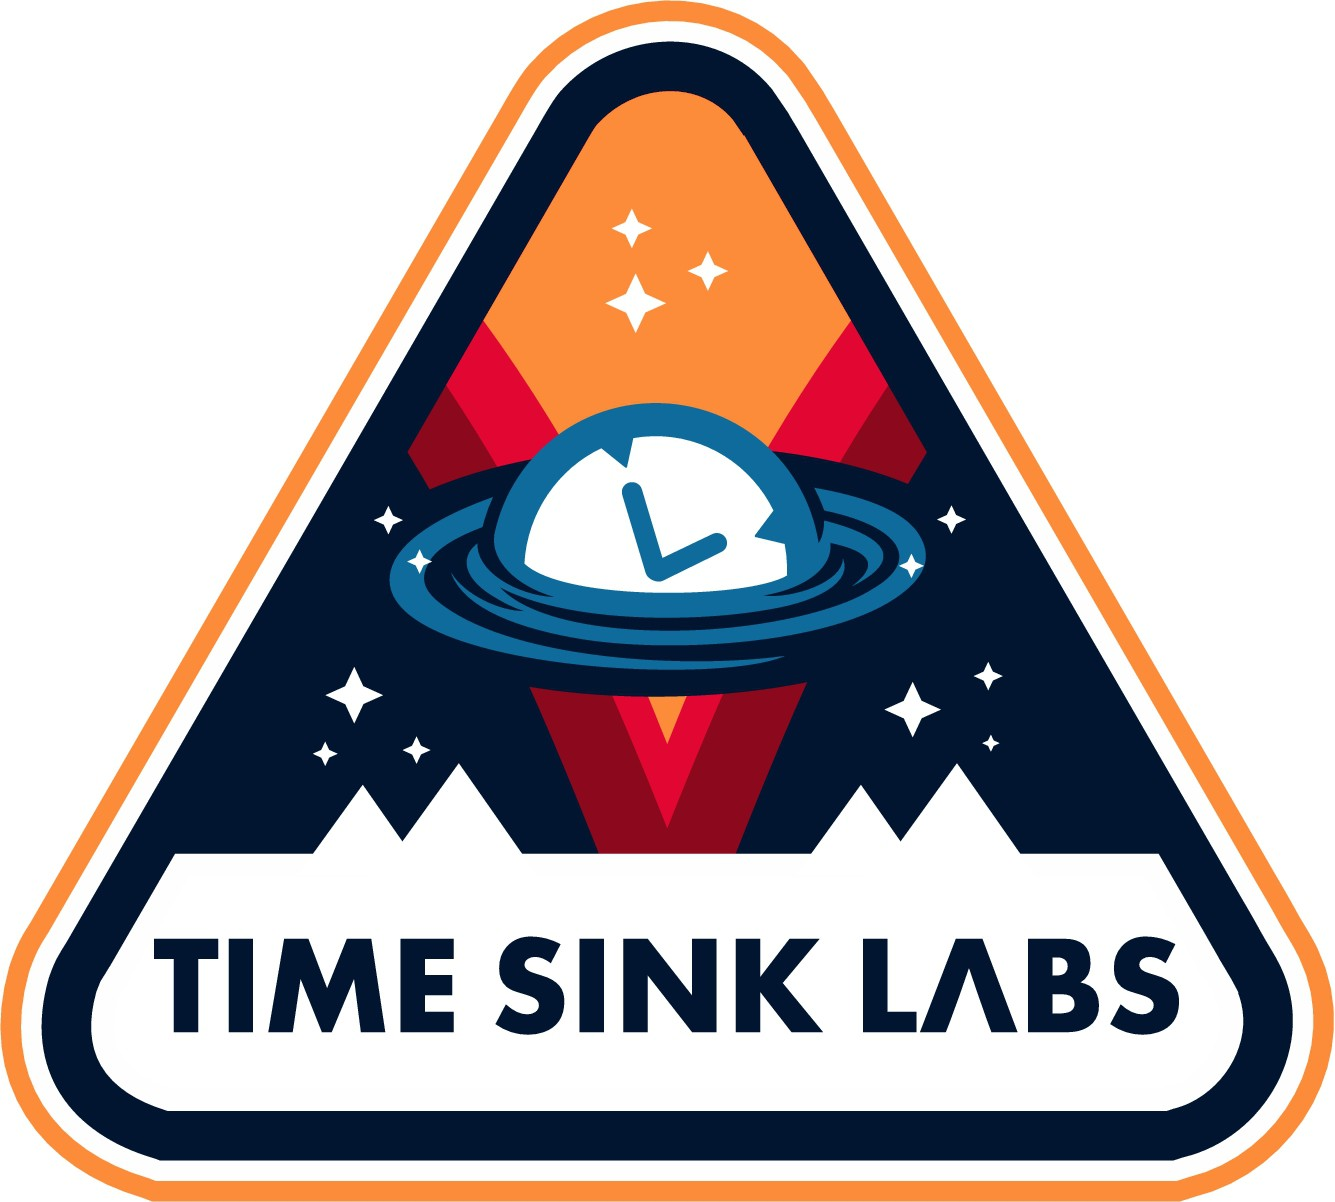 Variation on contest entry for Time Sink Labs